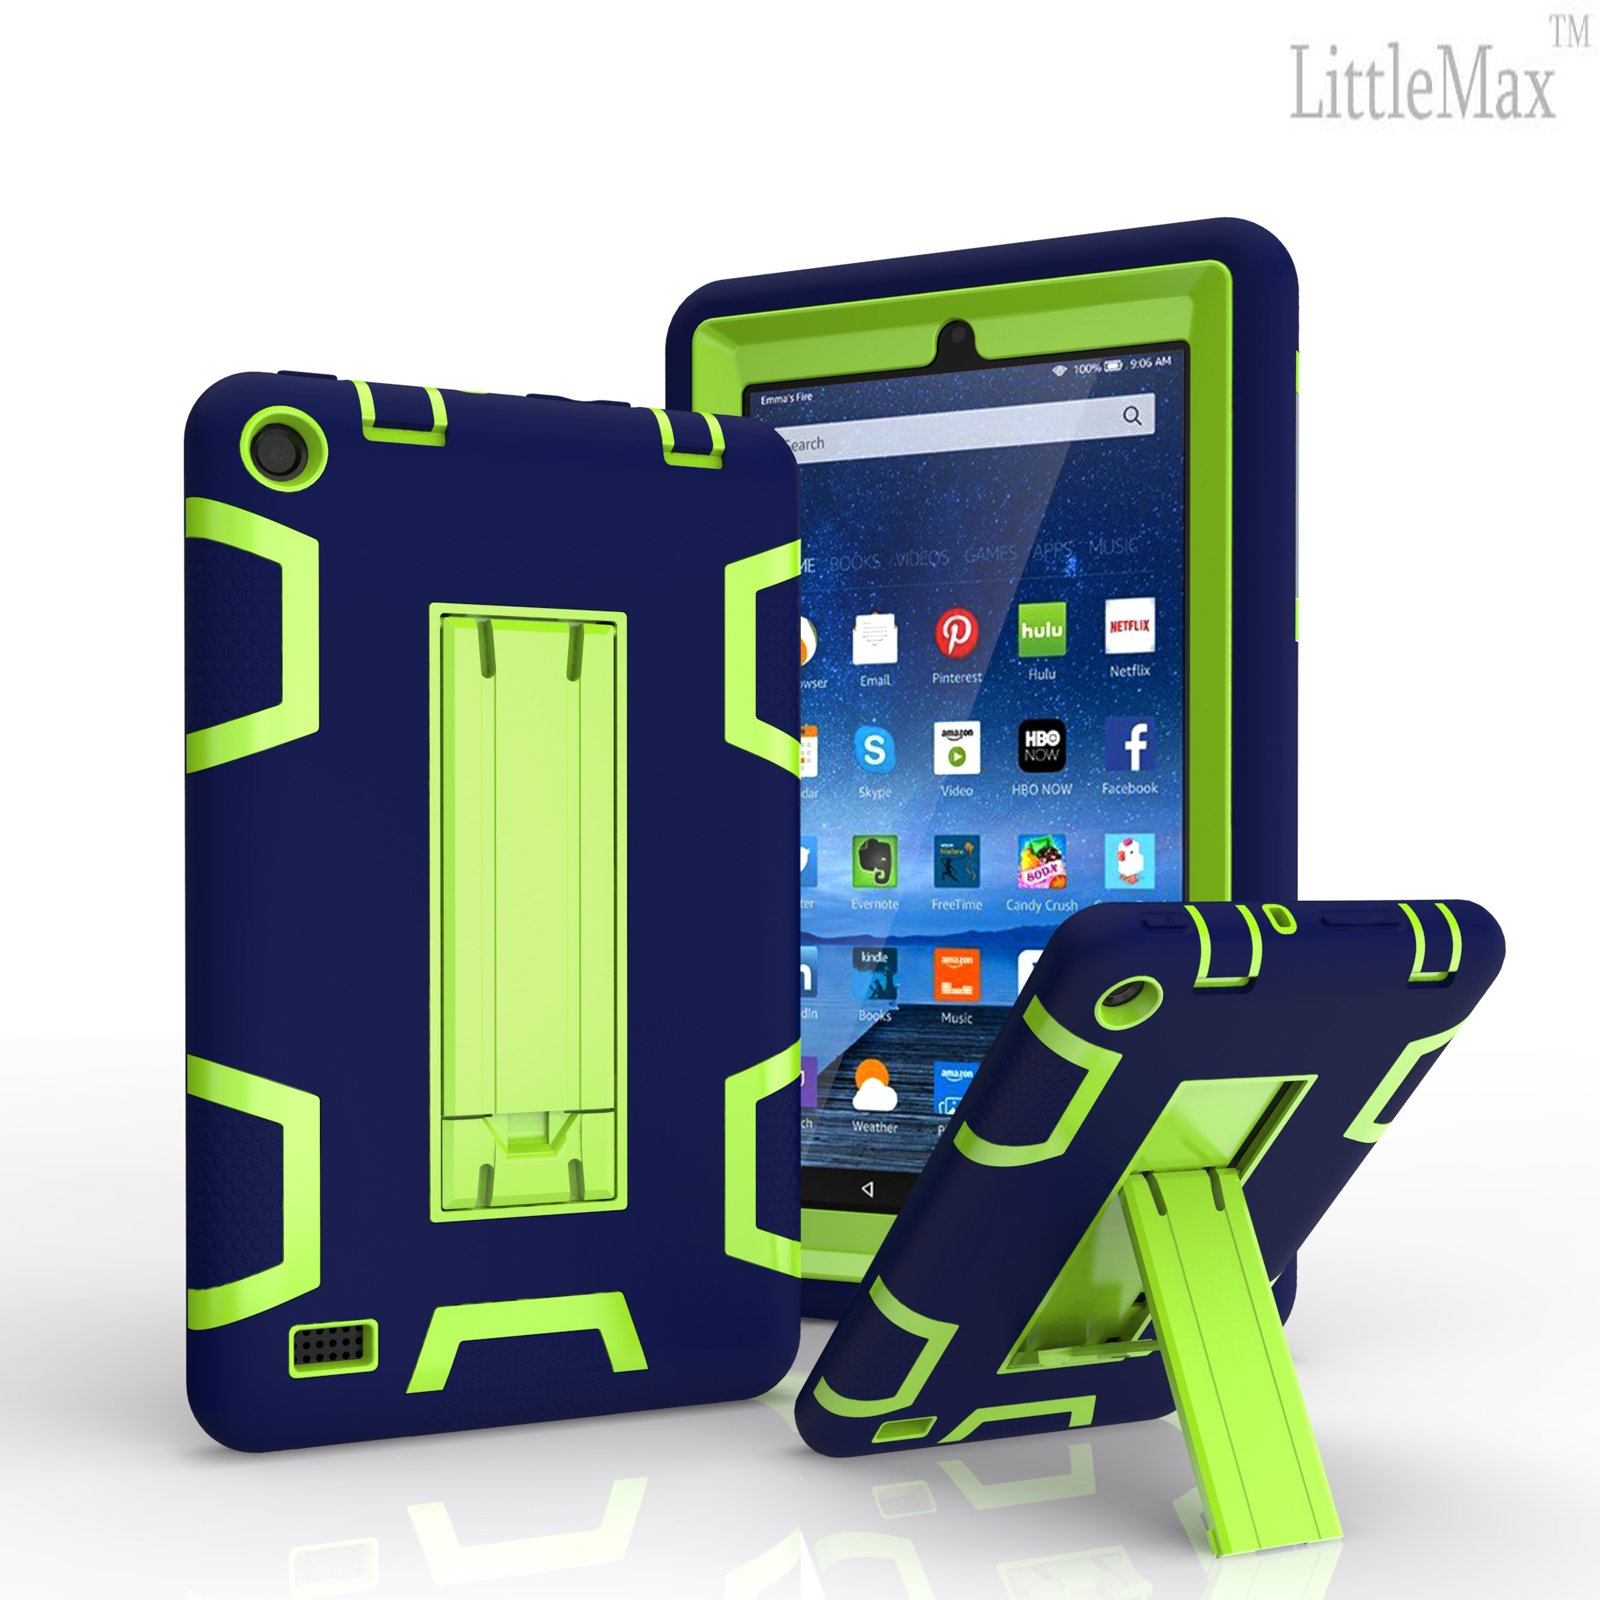 Case for Fire 7 (2015 Released),LittleMax(TM) [High Impact] Kickstand Protective Case Daul Lay Robot Soft Gel Tough PC Amazon Fire 7 Inch Tablet Cover [Free Cleaning Cloth,Stylus Pen]-Navy Blue Green